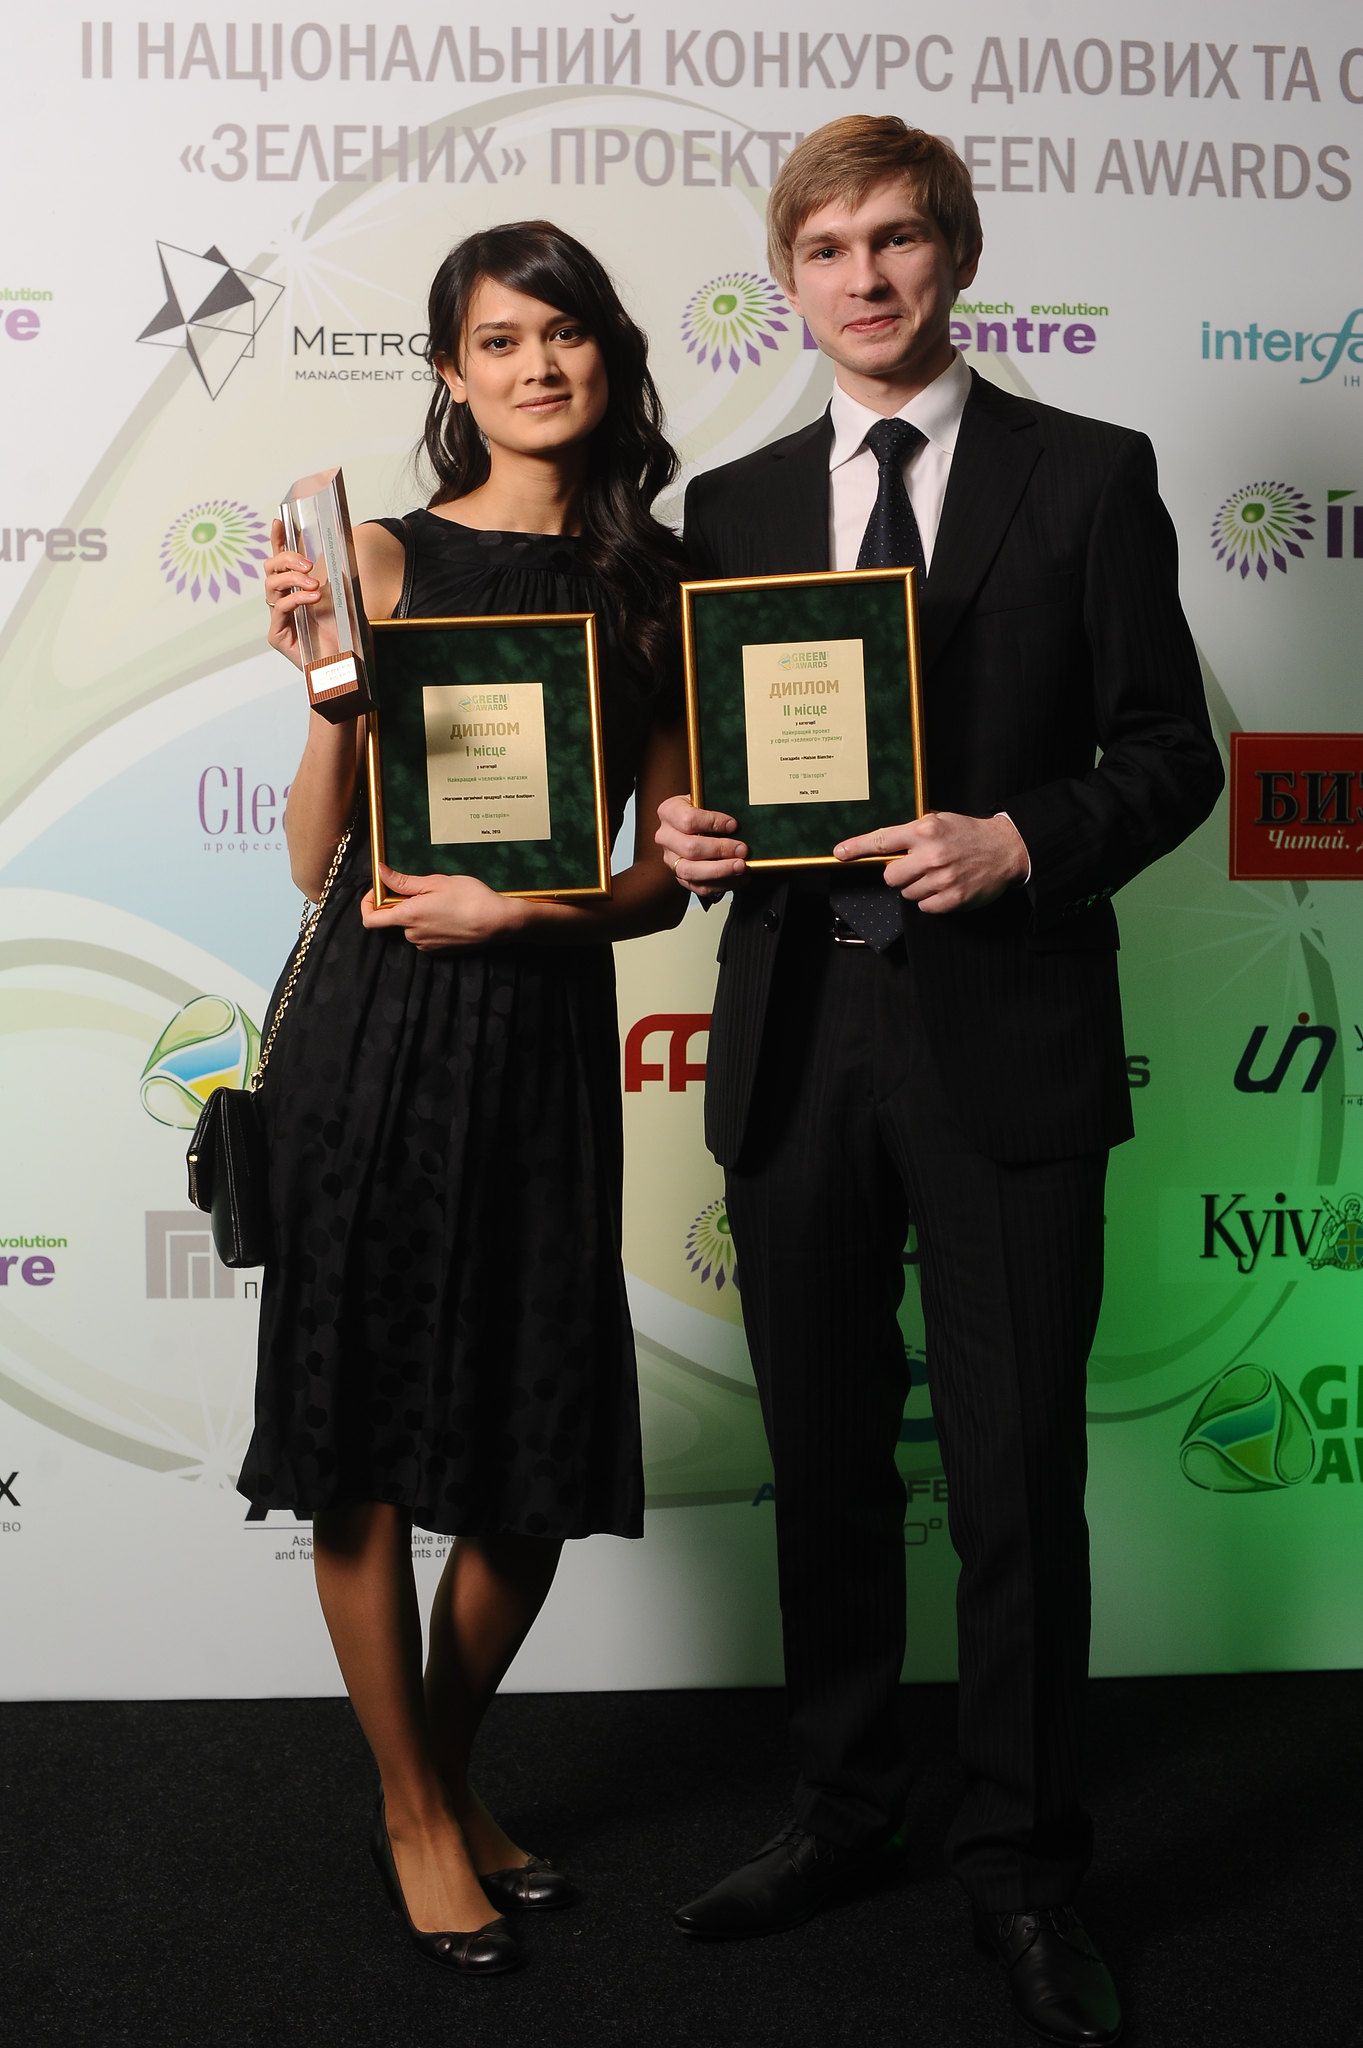 Green Awards Ukraine